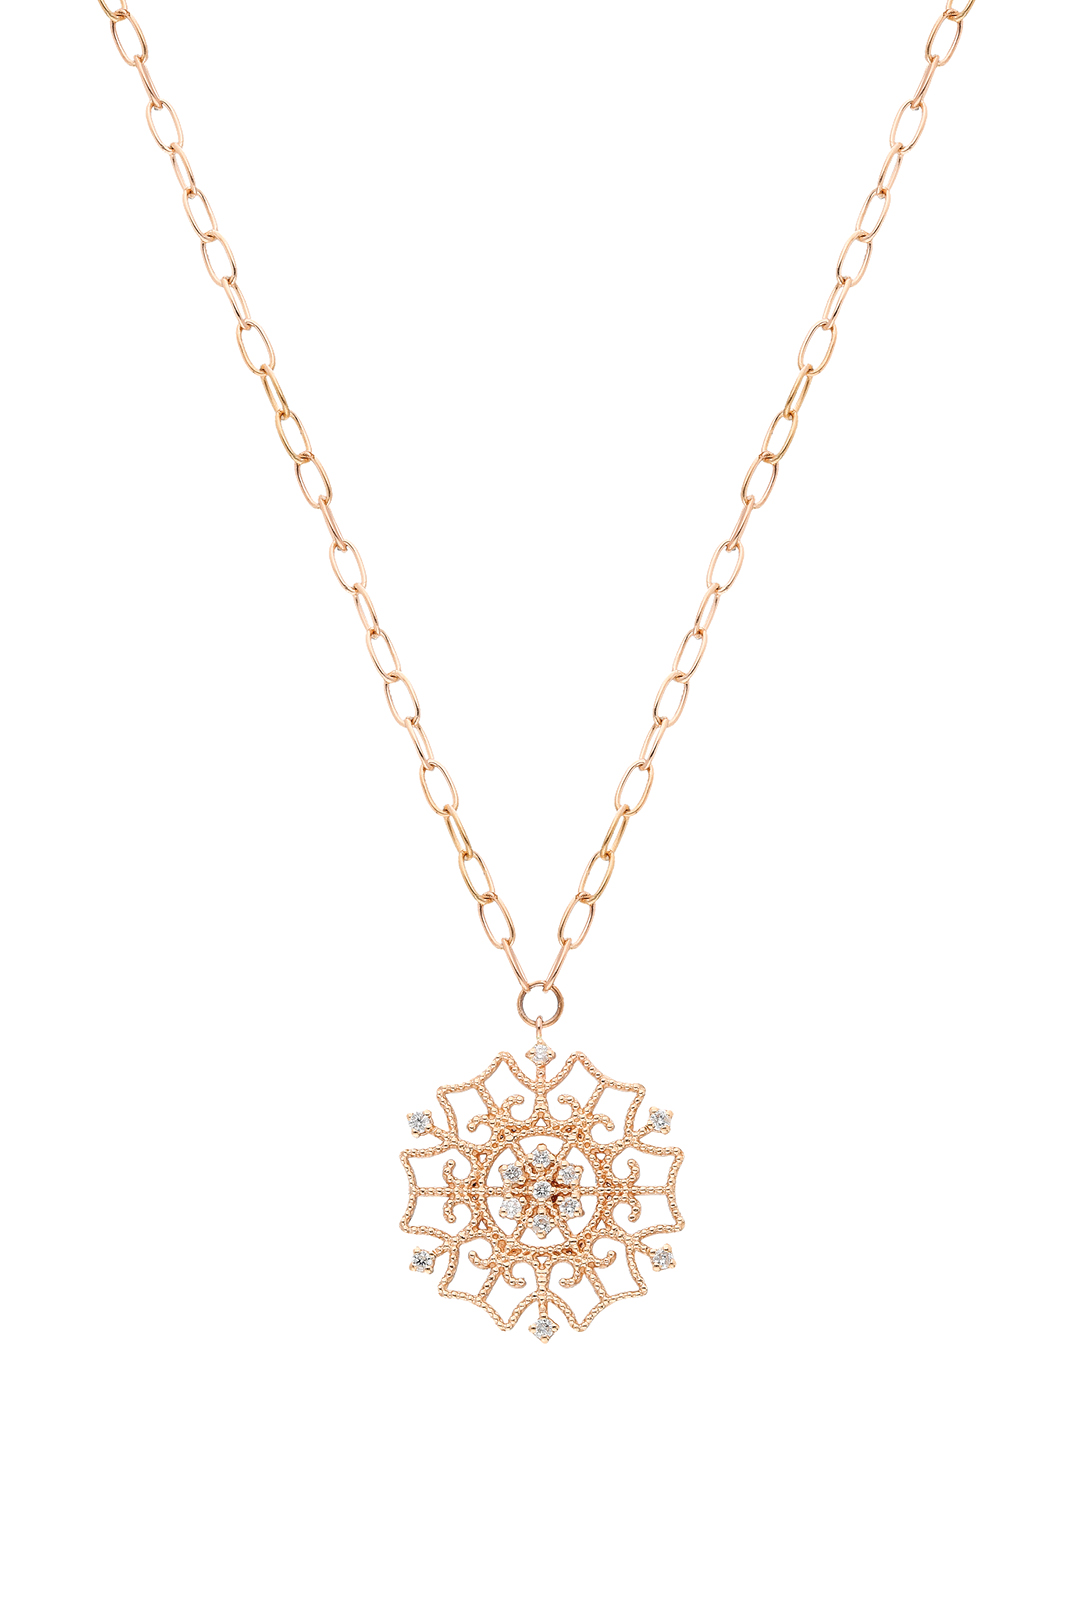 GEOMETRIC MINI BALLS AND DIAMOND NECKLACE